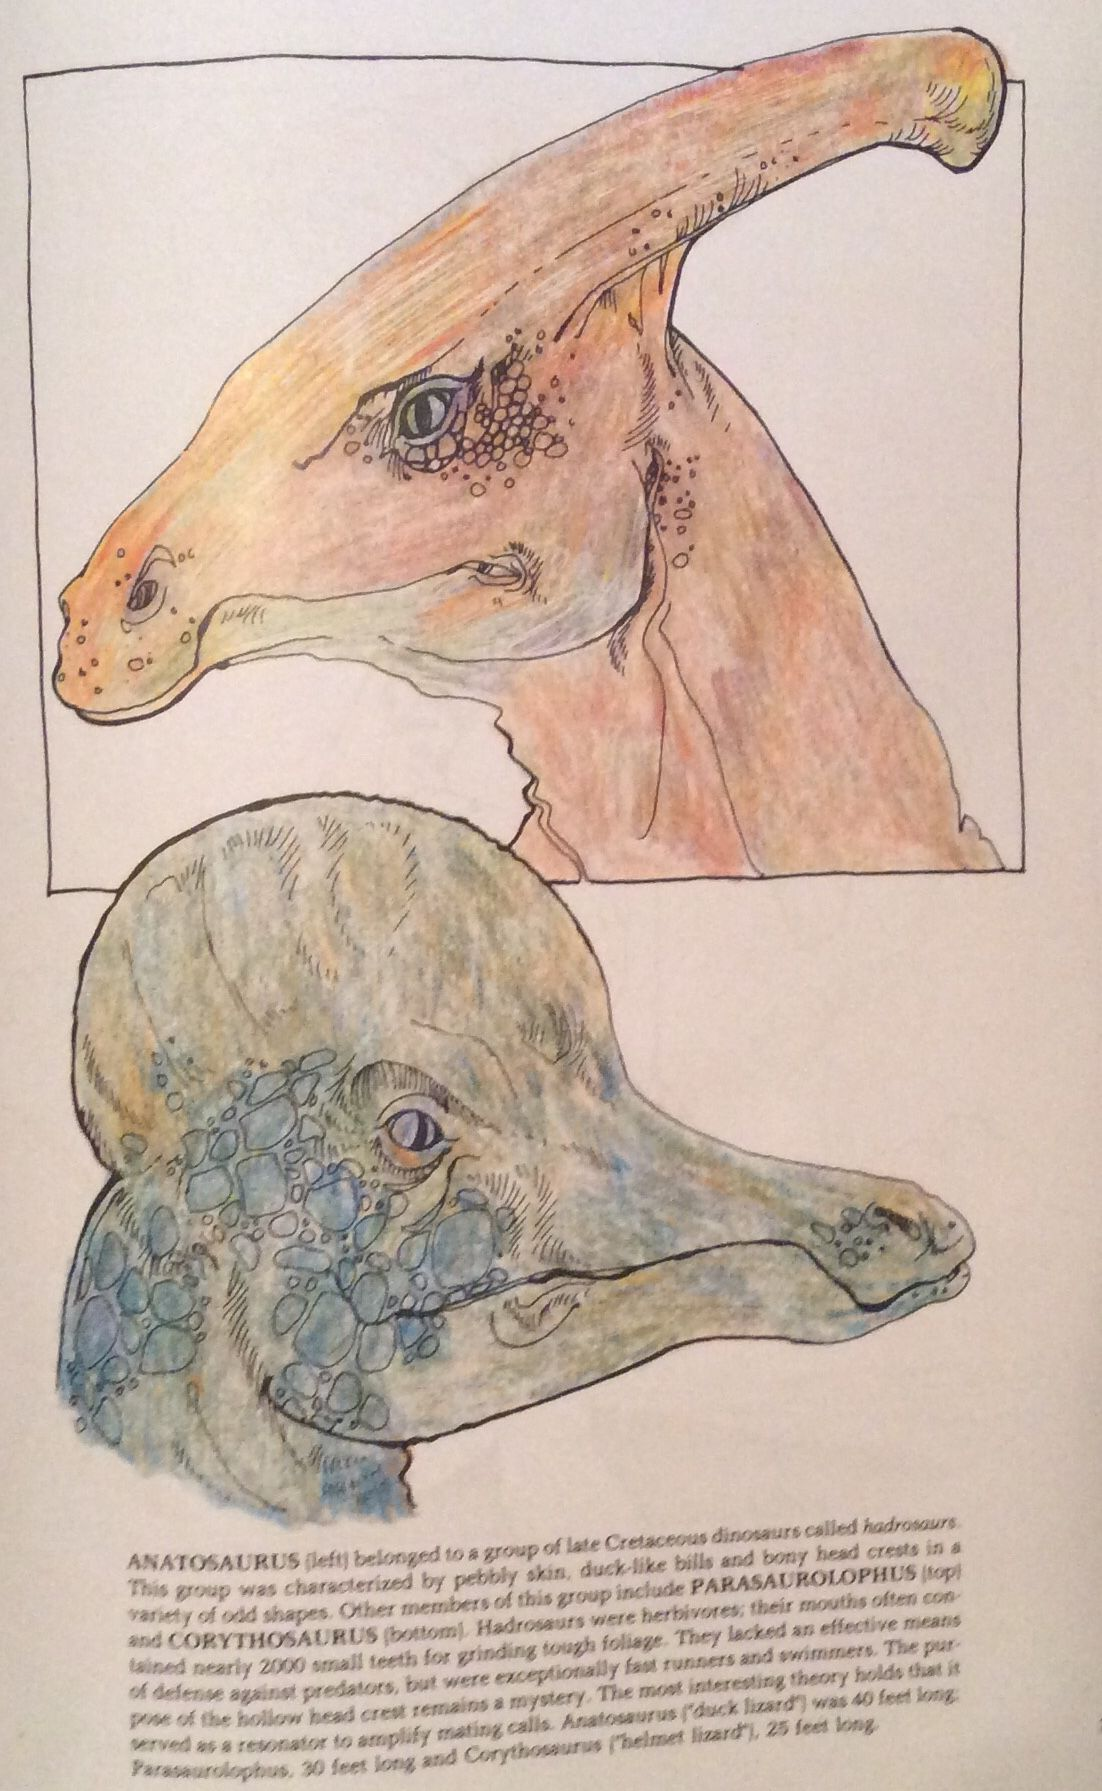 Parasaurolophus (top) and Corythosaurus (bottom